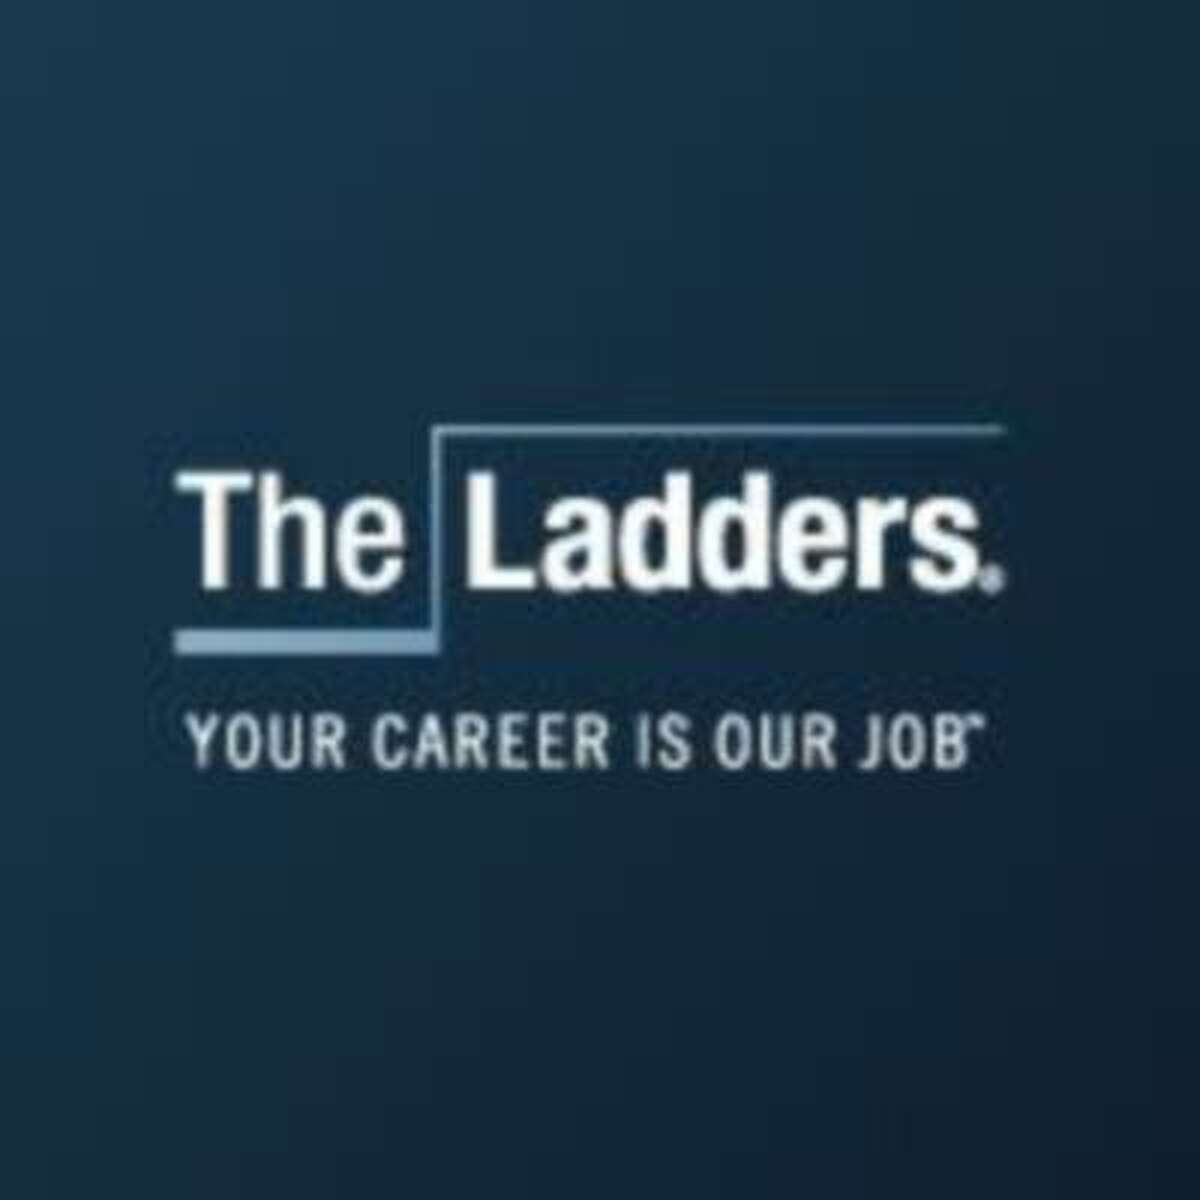 A new free iPhone app called TheLadders takes a different approach and sends a list of job opportunities to users based on their employment profile and career goals.